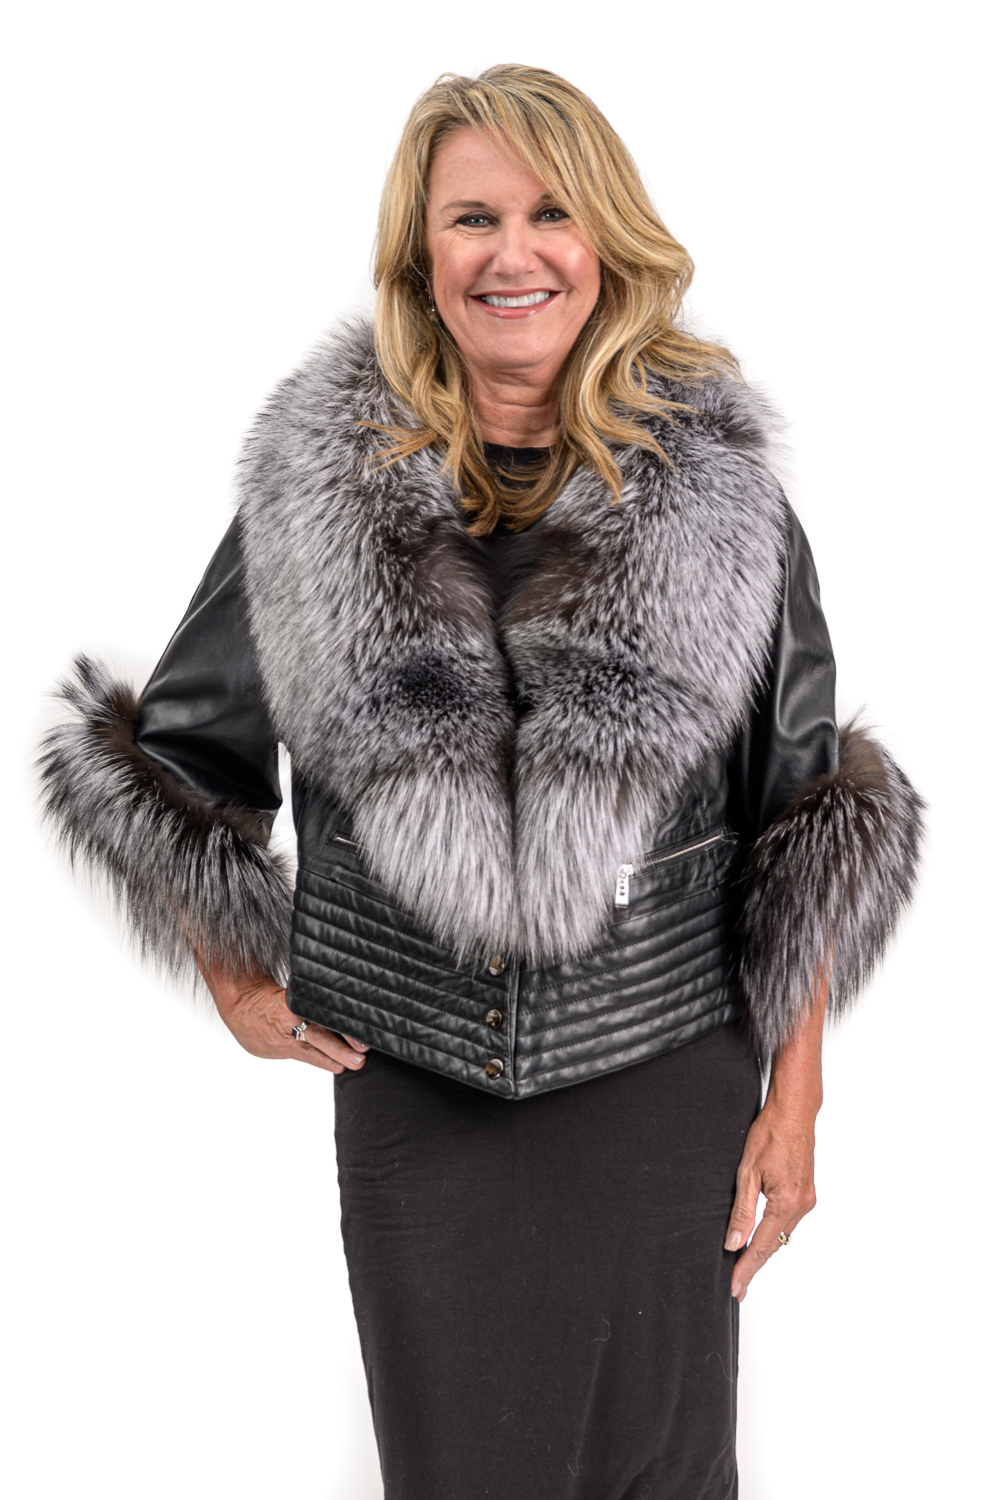 W5 2 Lamb Leather Vest with Silver Fox 1